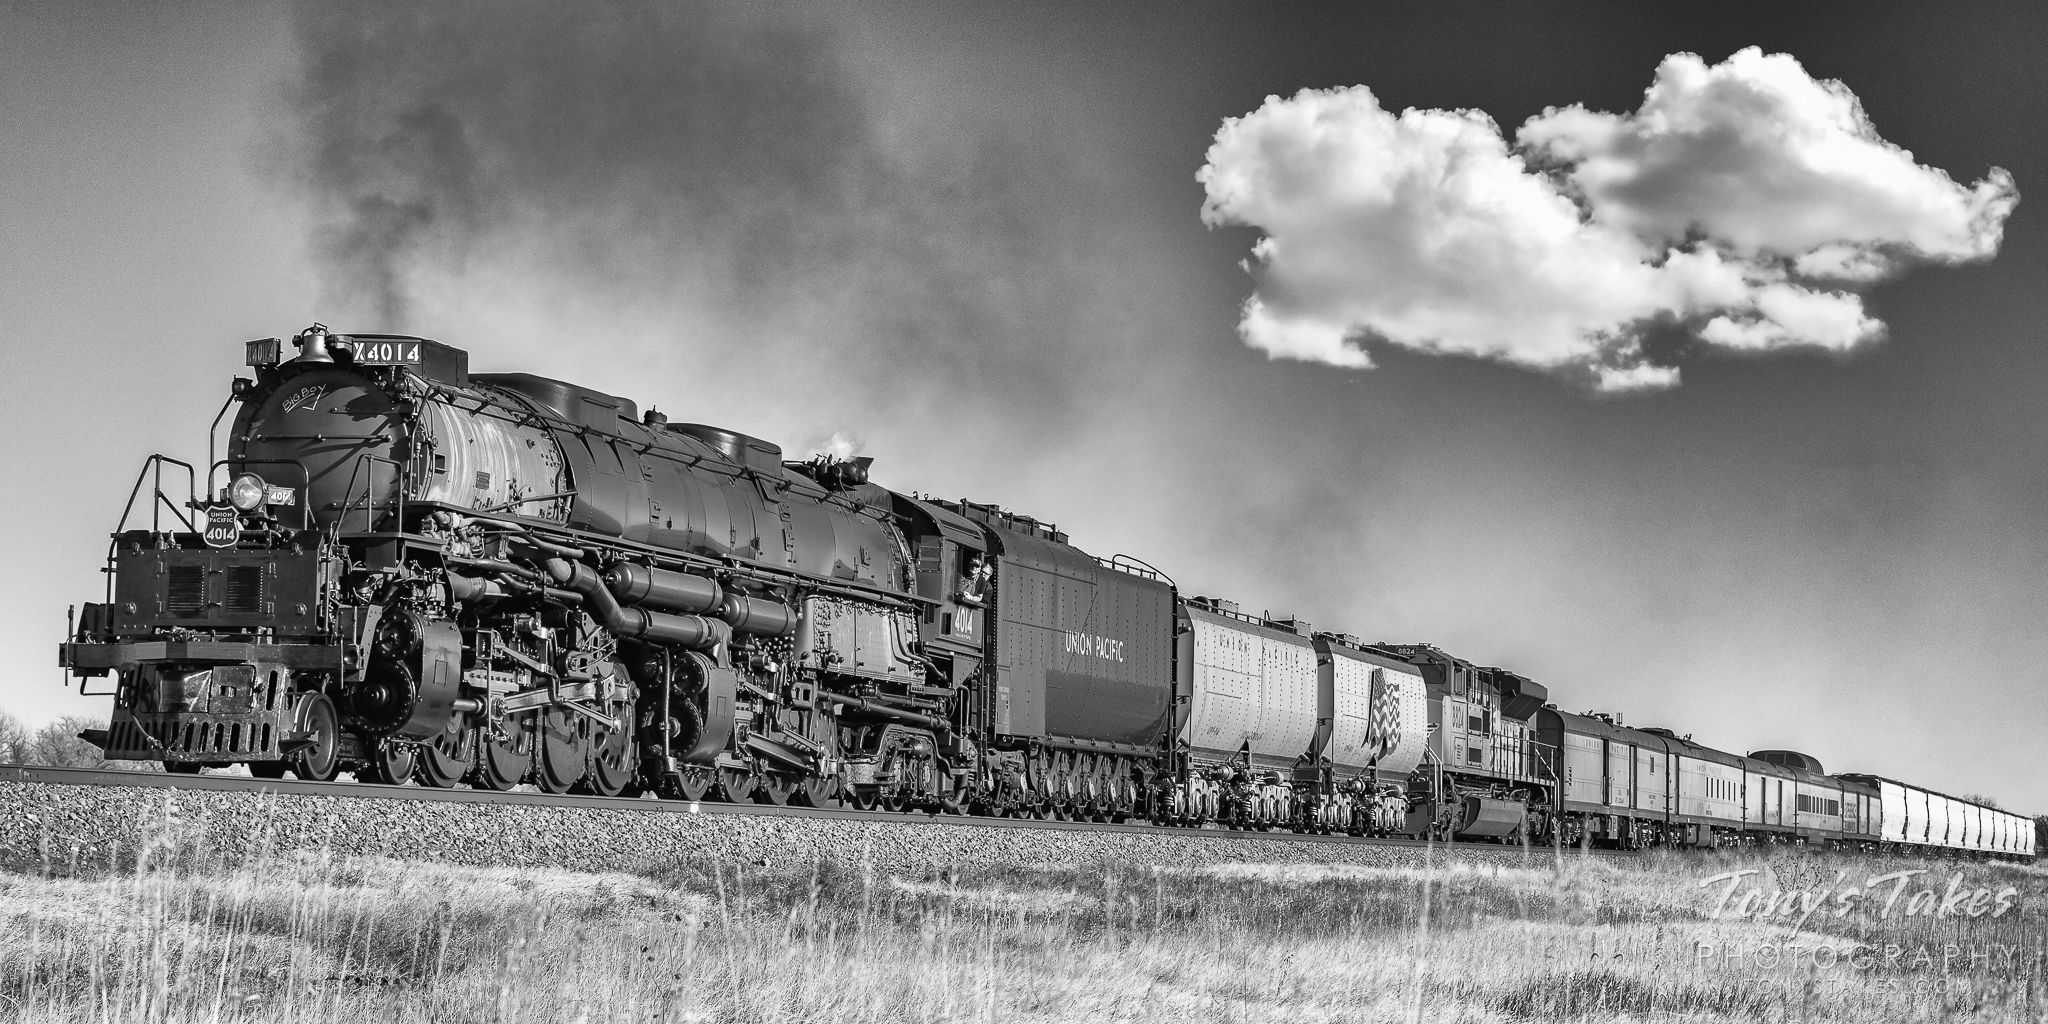 Union Pacific's Big Boy No. 4014 rumbles across the Great Plains